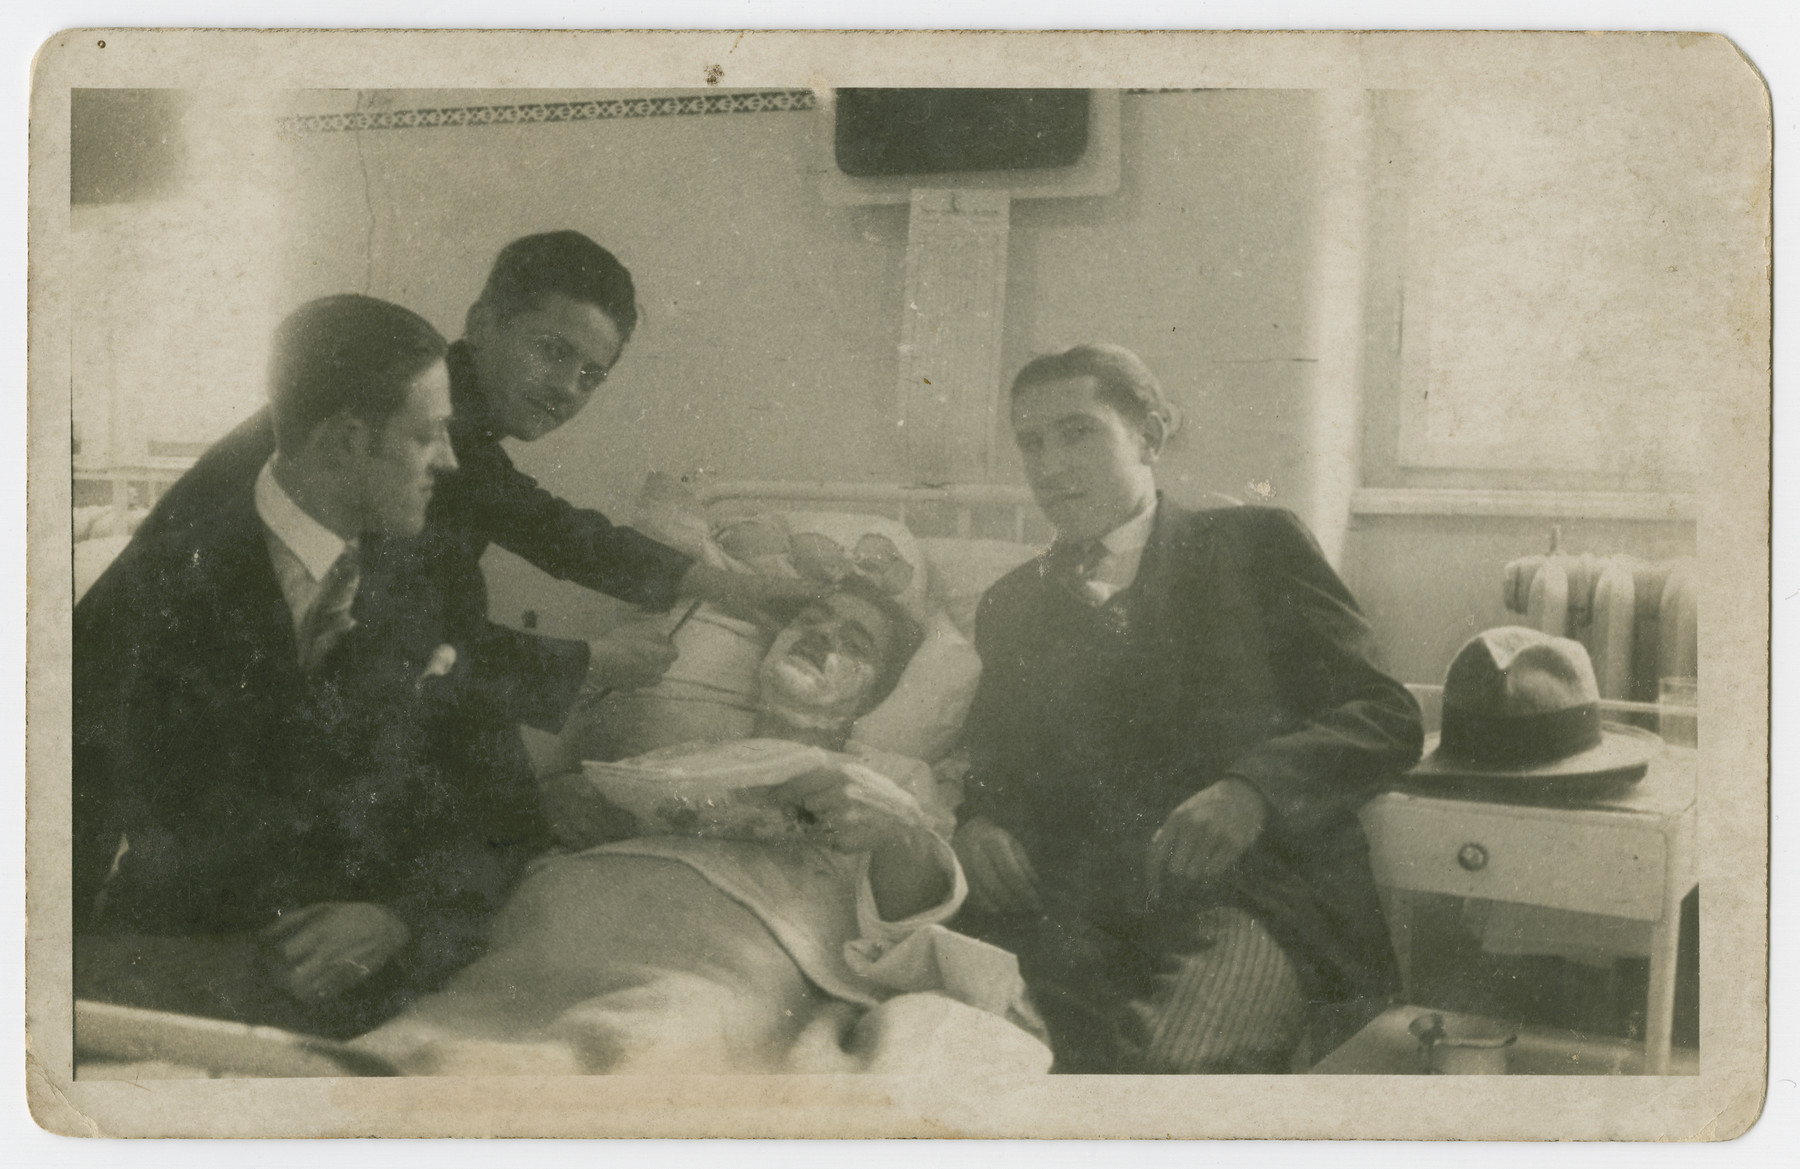 Adolf Lebovics (first man on the left ) and a group of friends visit and shave the face of a hospitalized friend.